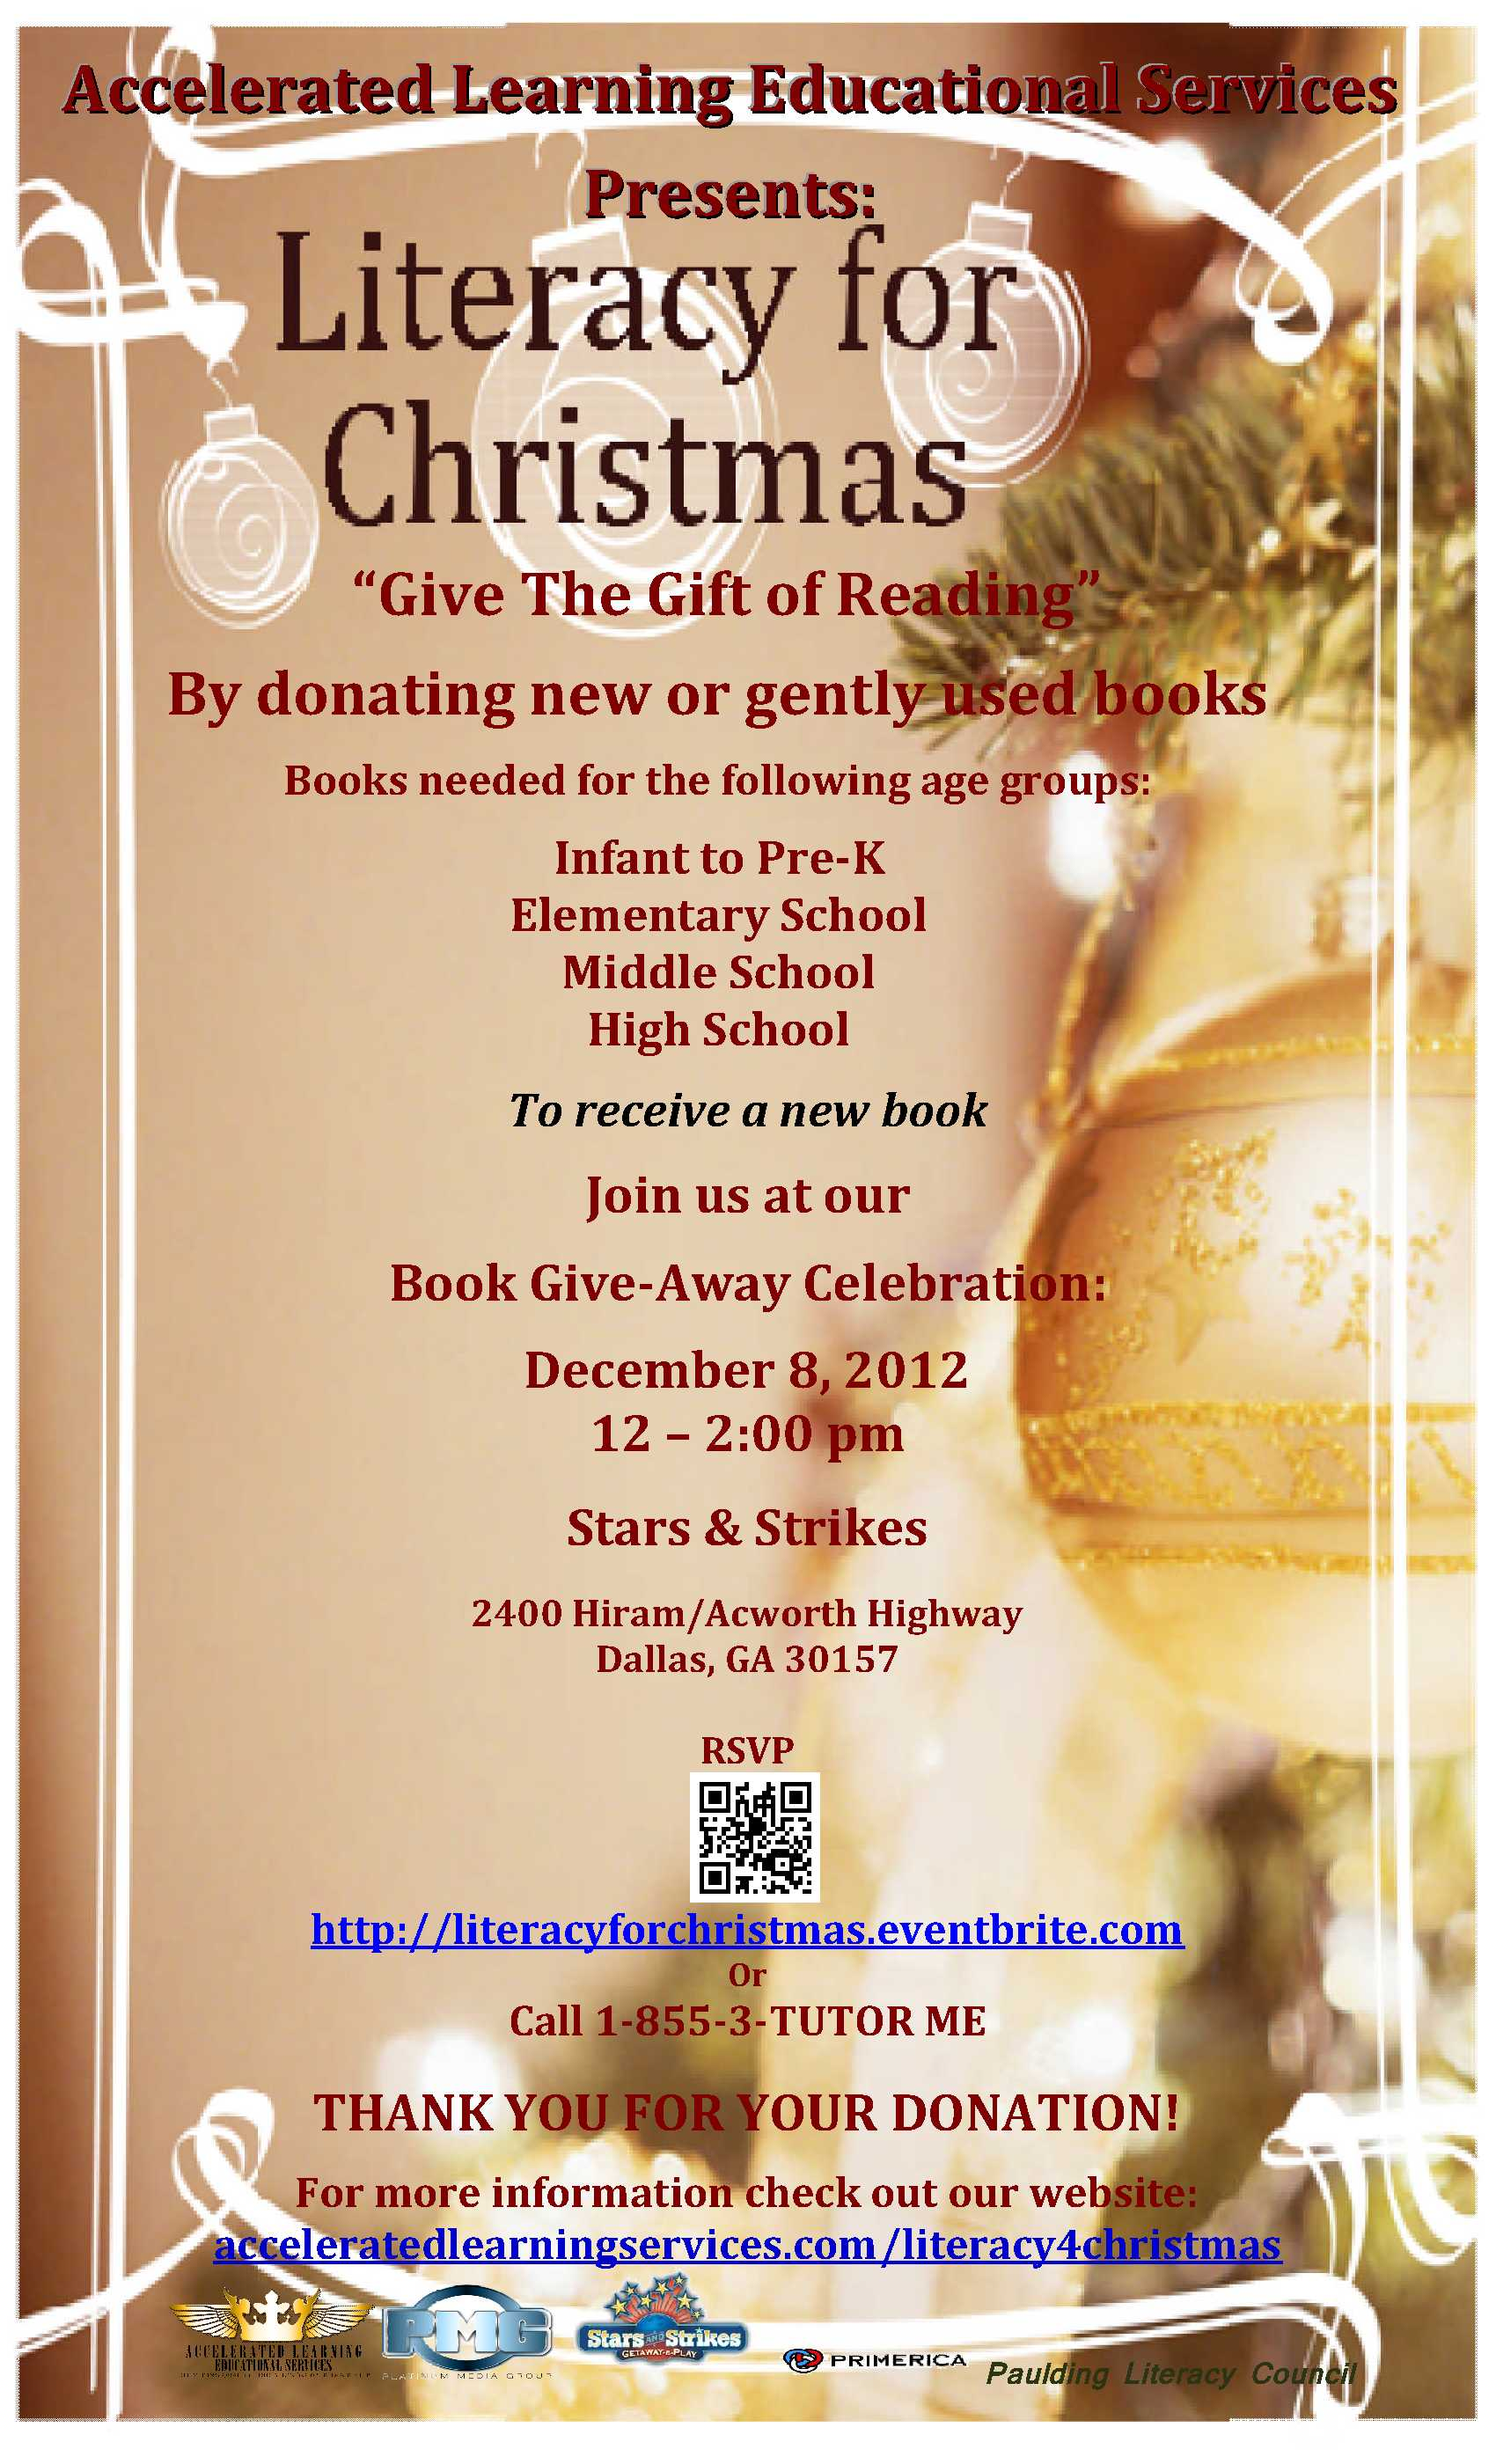 Literacy For Christmas presented by Accelerated Learning Educational Services